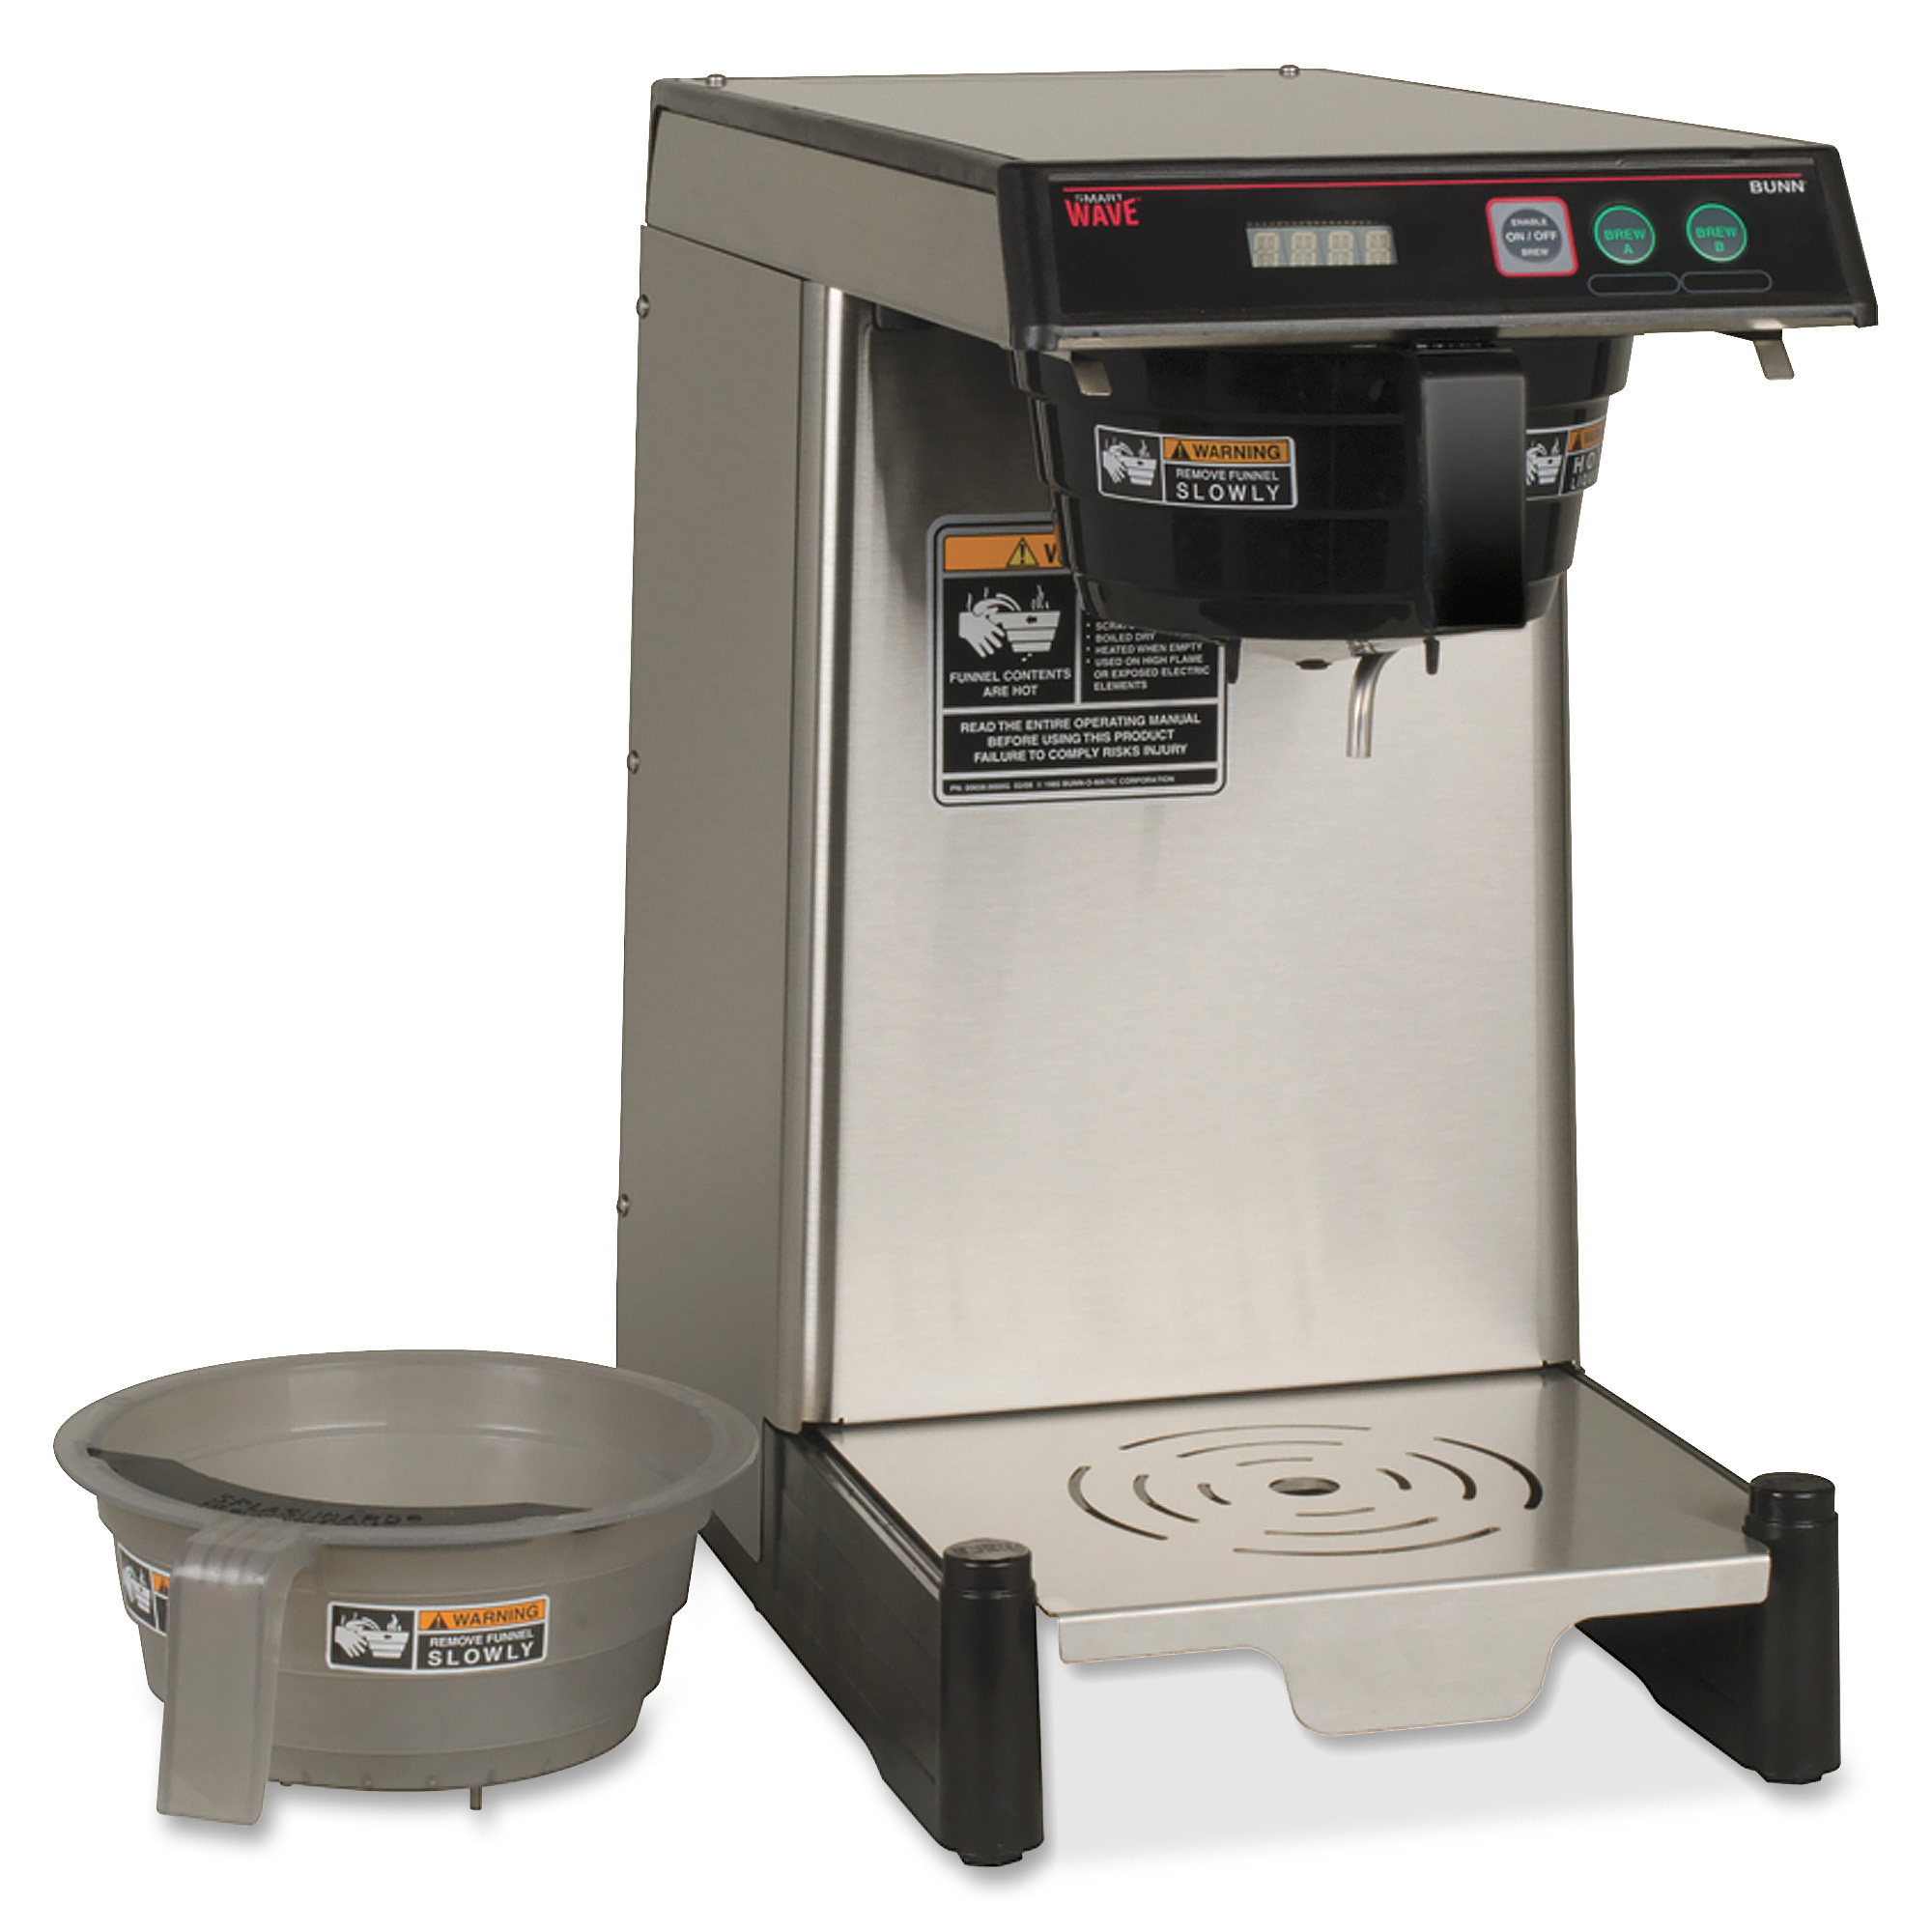 BUNN WAVE Combo Coffee/Tea Brewer